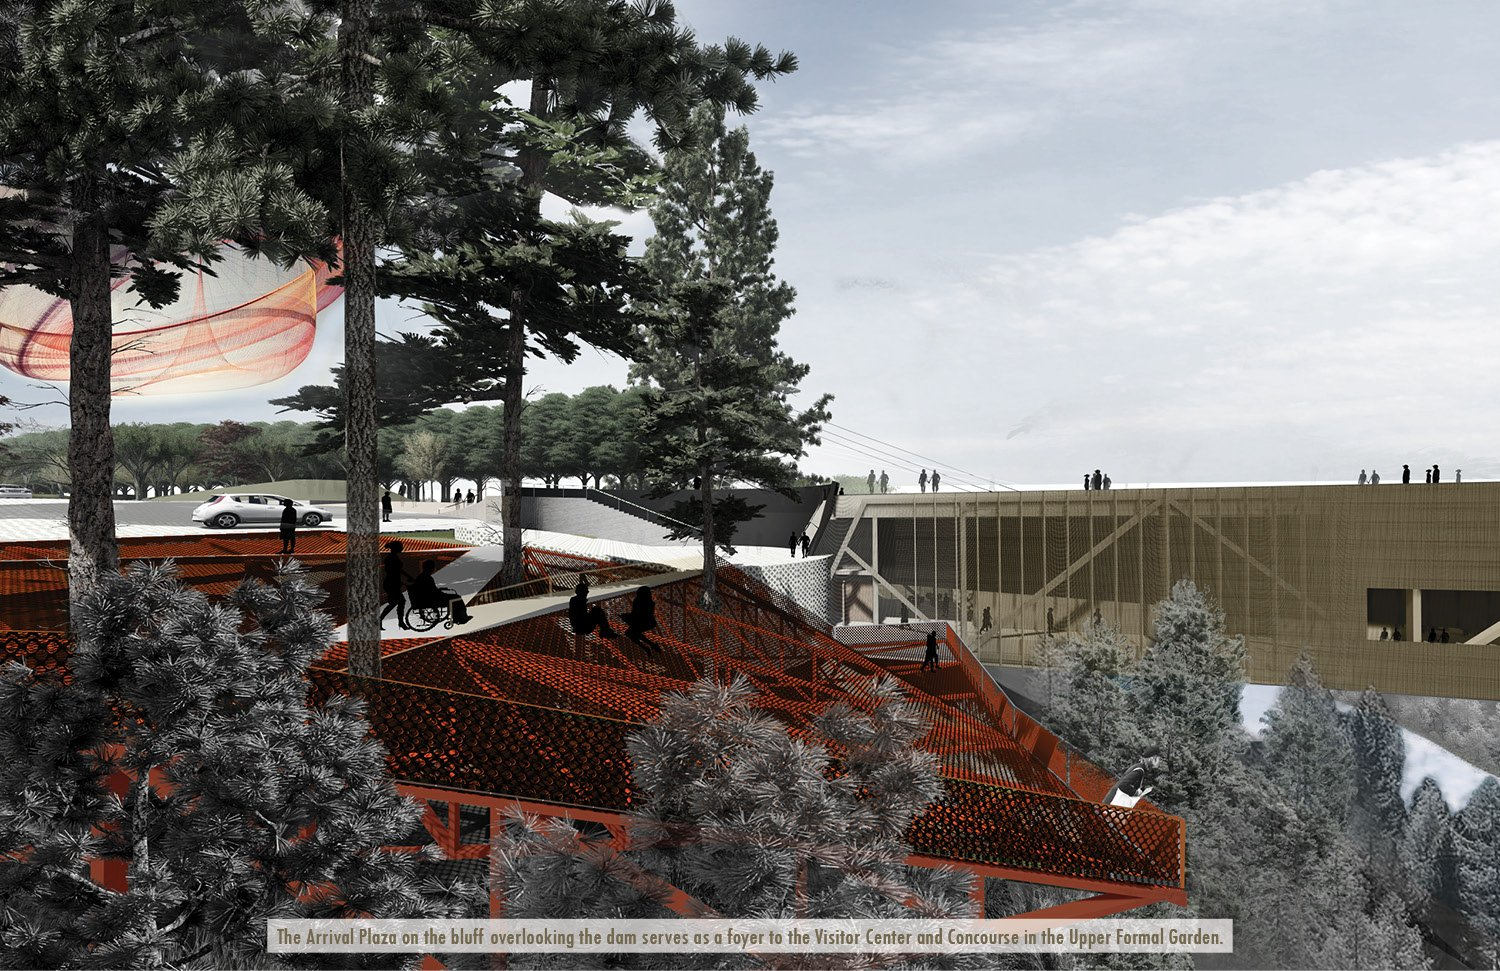 The Arrival Plaza on the bluff overlooking the dam serves as a foyer to the Visitor Center and Concourse in the Upper Formal Garden. University of Arkansas Community Design Center